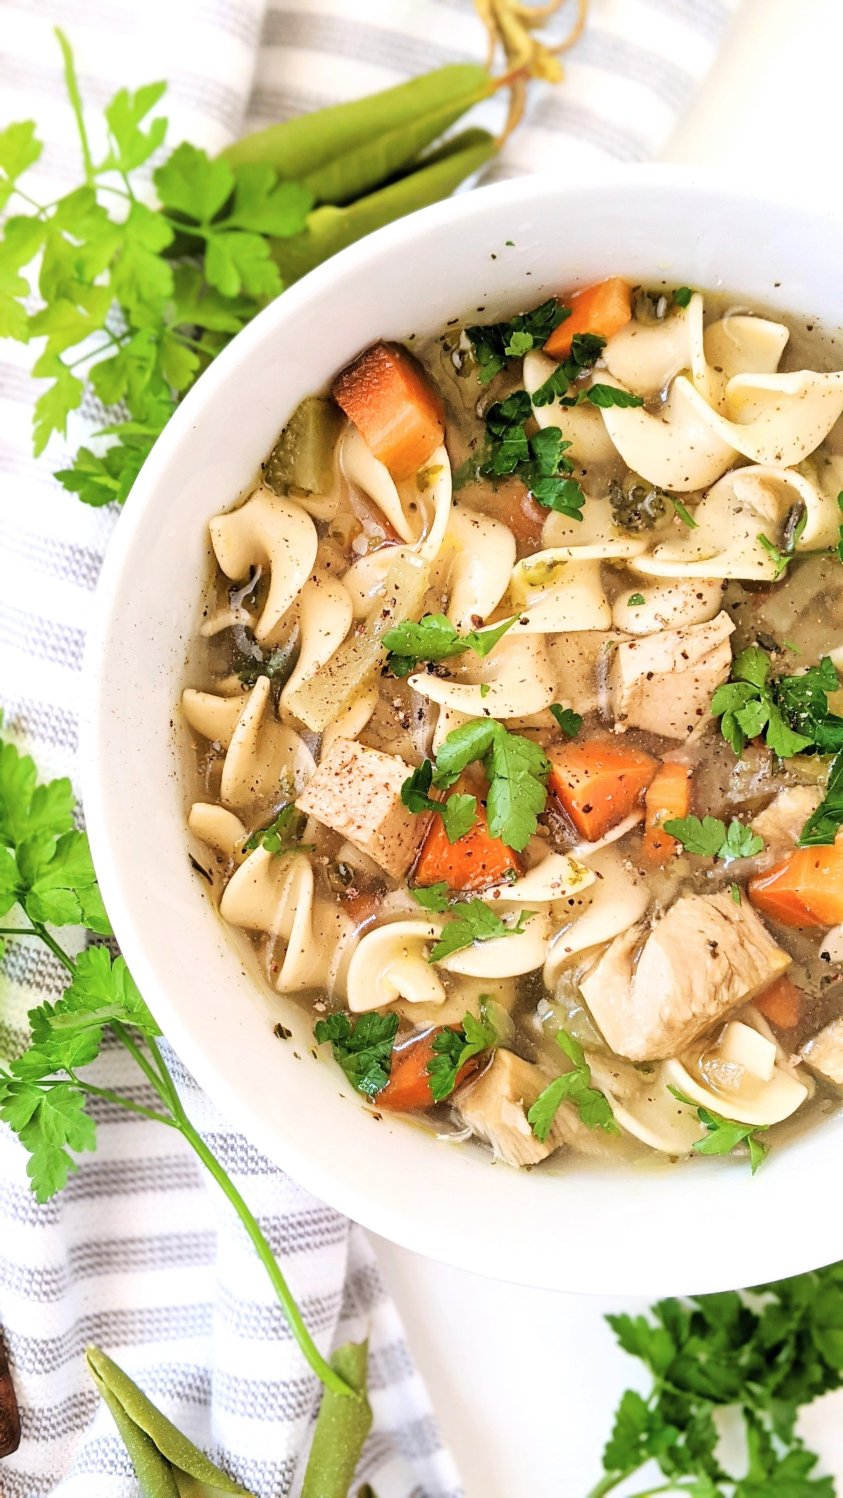 classic turkey noodle soup recipe gluten free dairy free soup recipes with leftover turkey thanksgiving leftover soup turkey noodle with gluten free egg noodles broad noodles